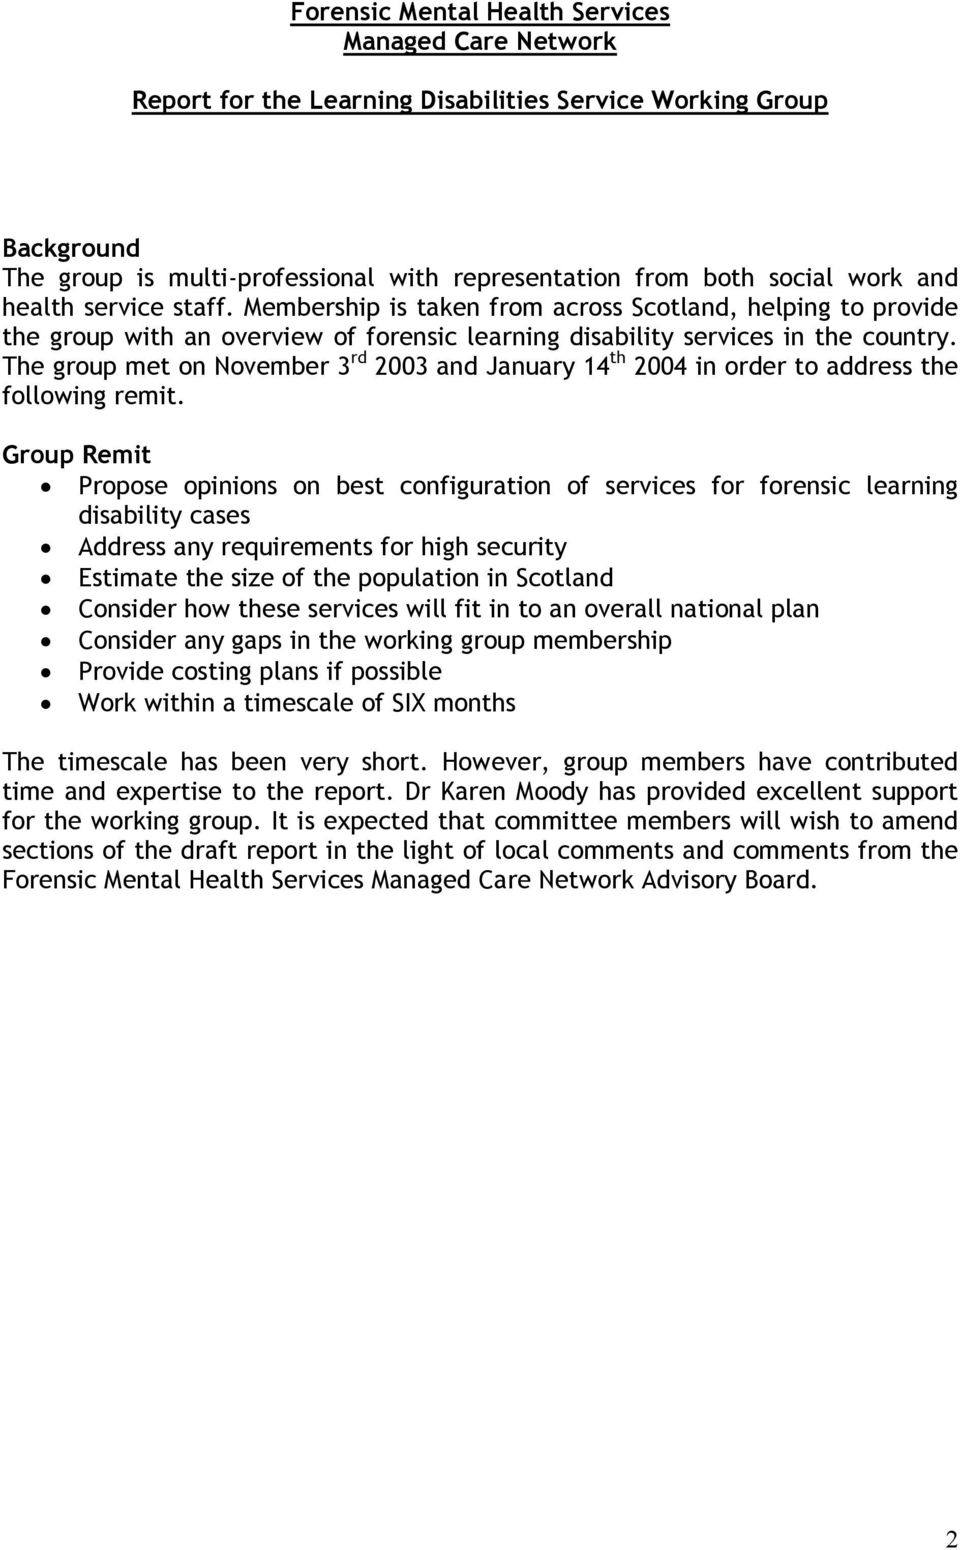 Forensic Mental Health Services Managed Care Network Report For The Learning Disabilities Service Working Group Pdf Free Download